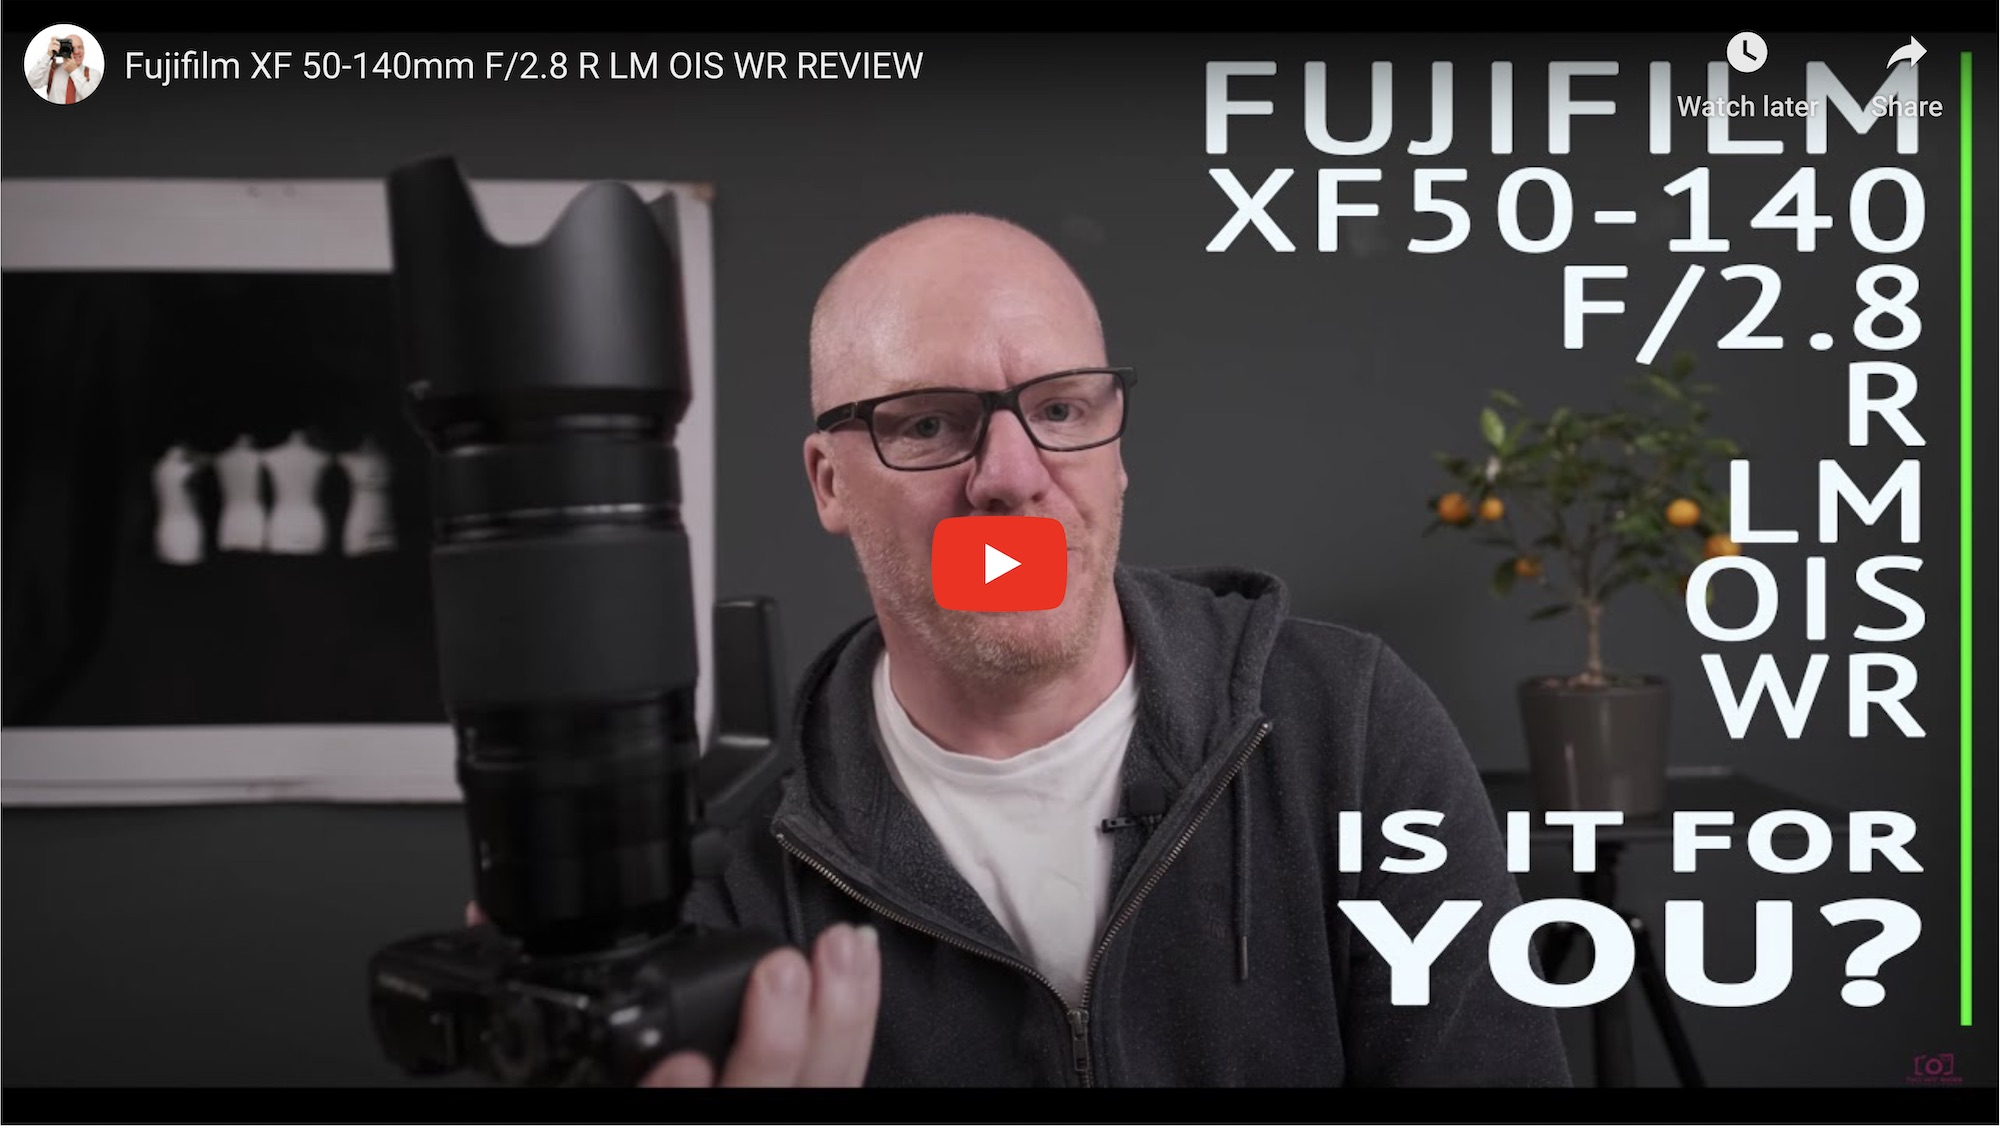 Fujifilm XF 50-140mm F/2.8 R LM OIS WR Review